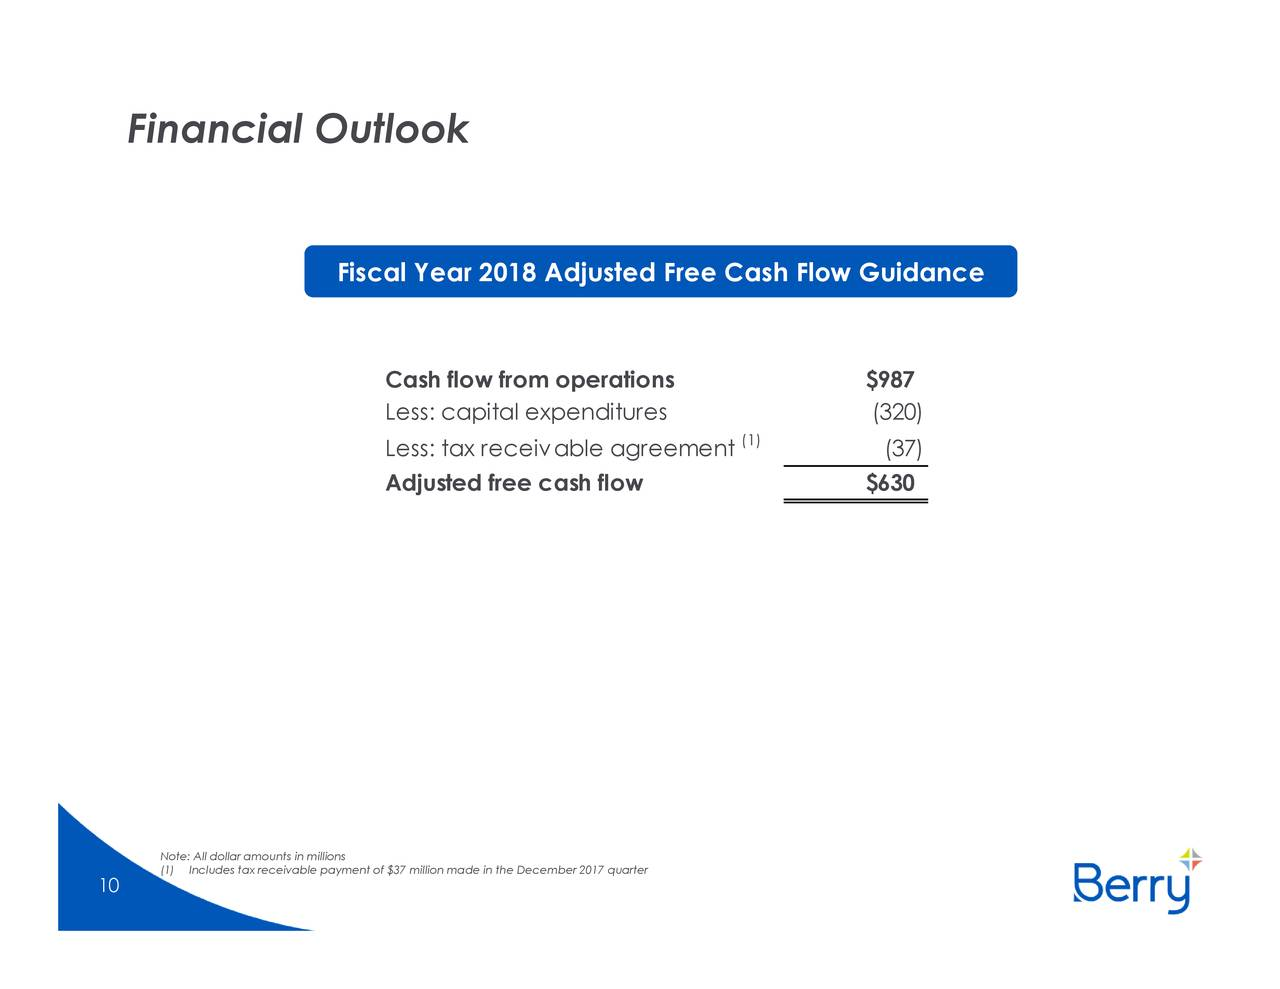 Berry Plastics Group Inc 2018 Q3 Results Earnings Call Slides